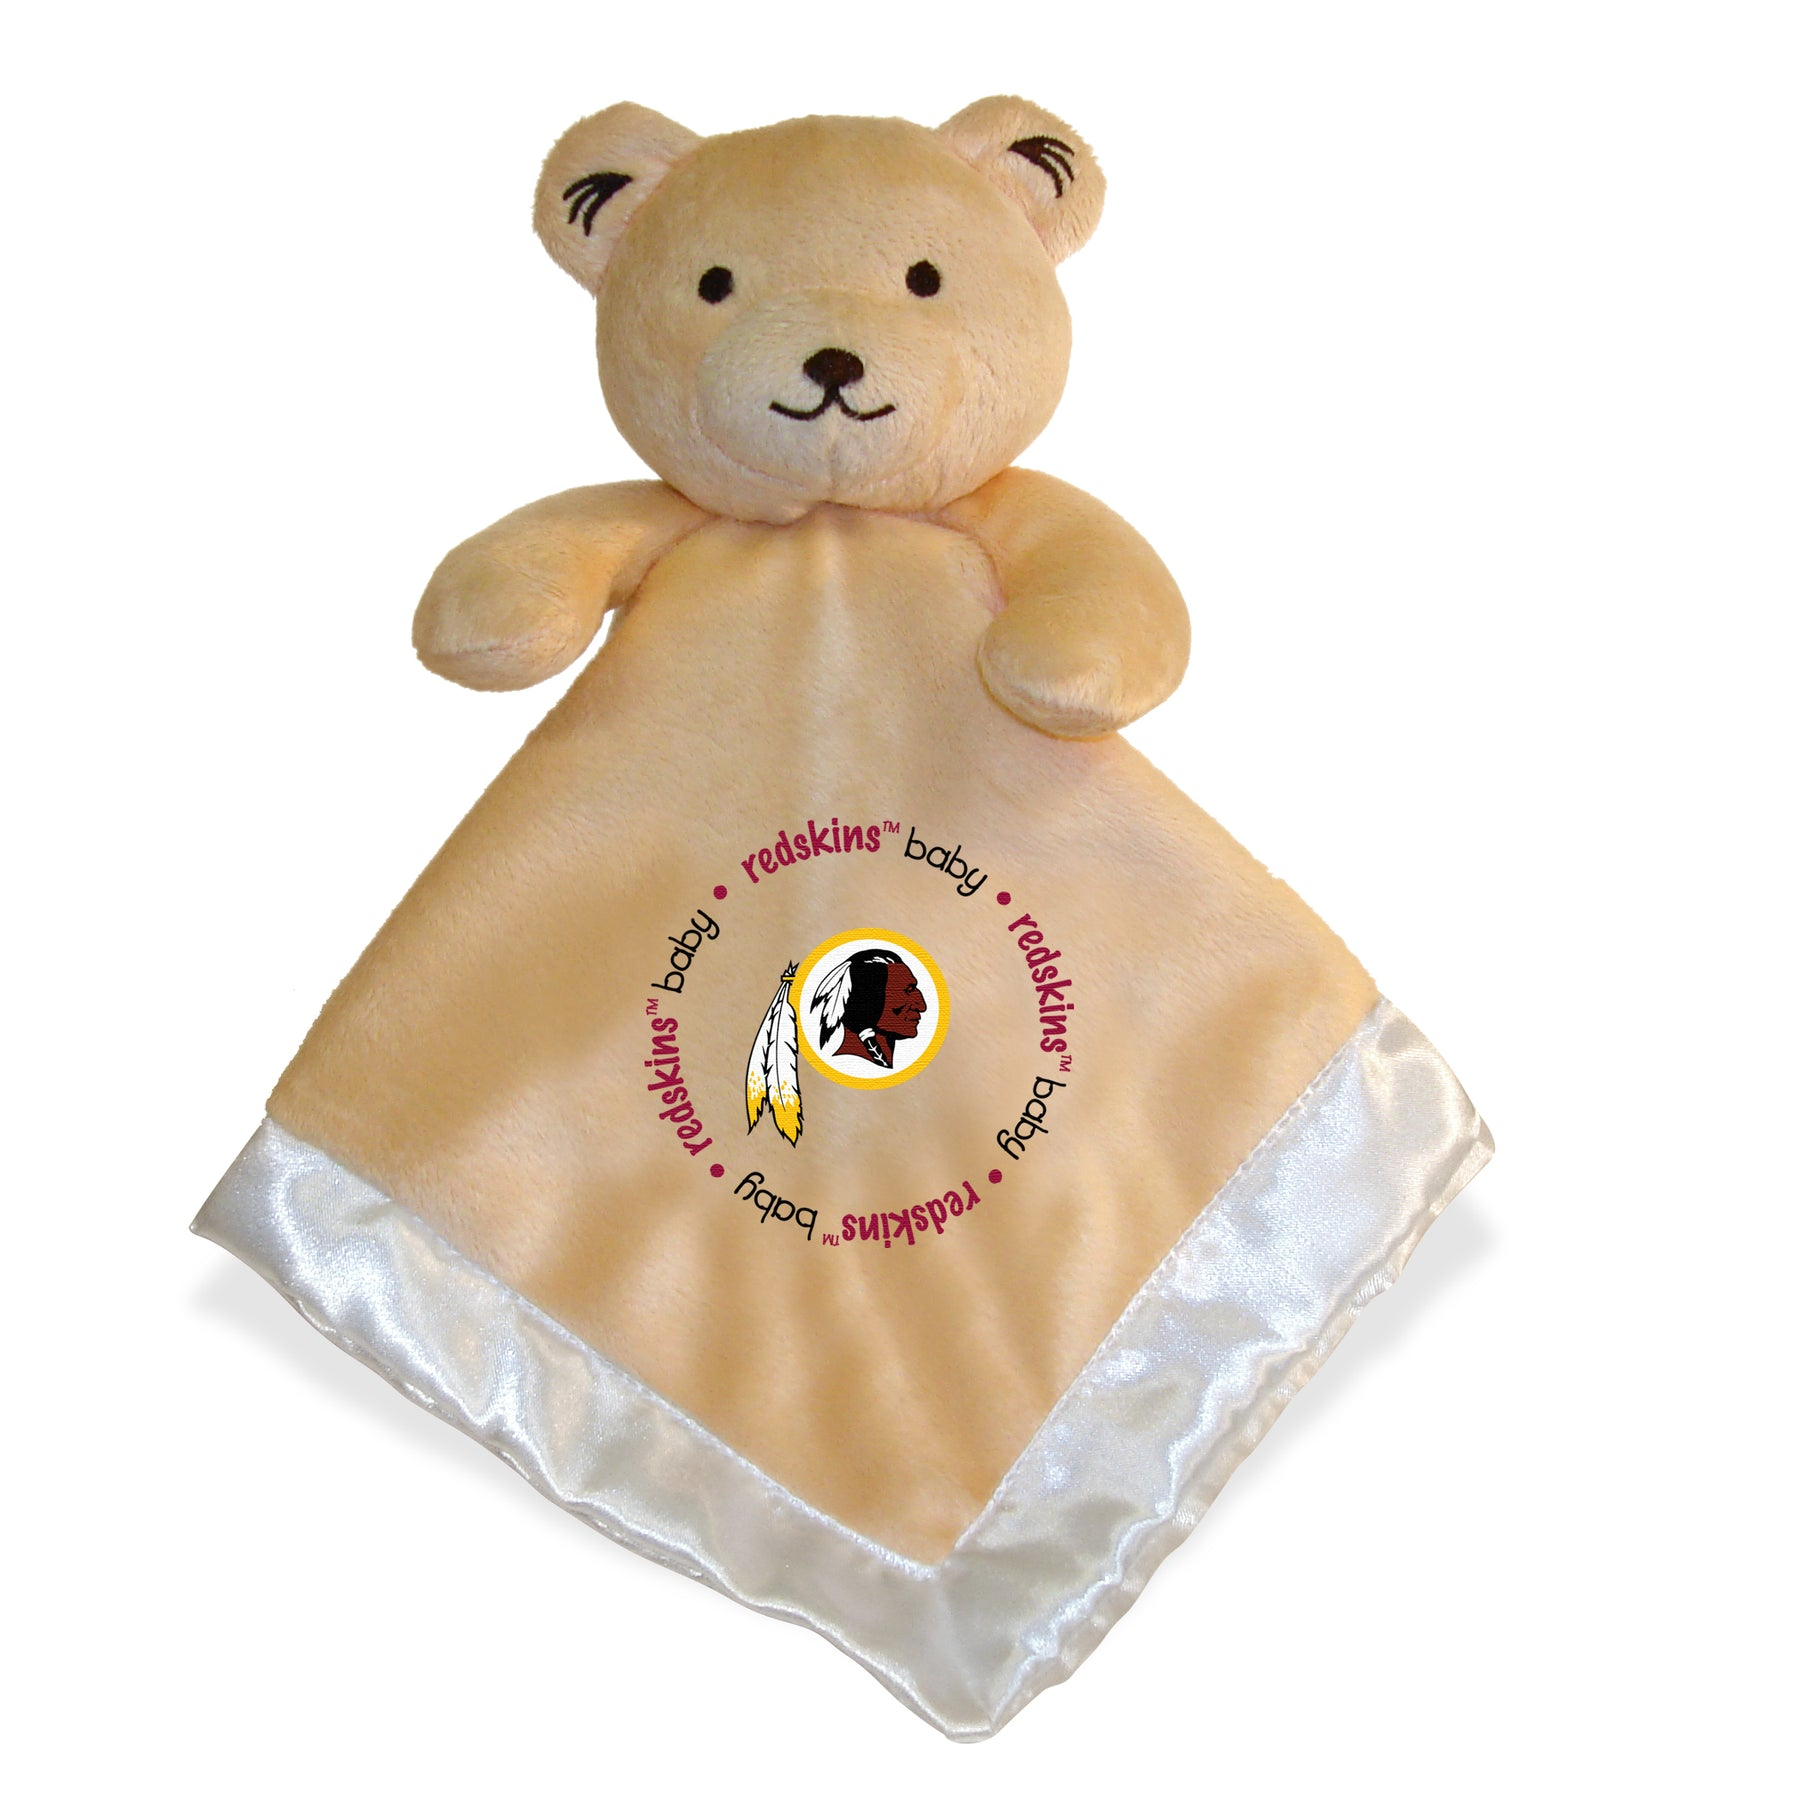 Redskins Baby Security Blanket – babyfans 378a3b6d3